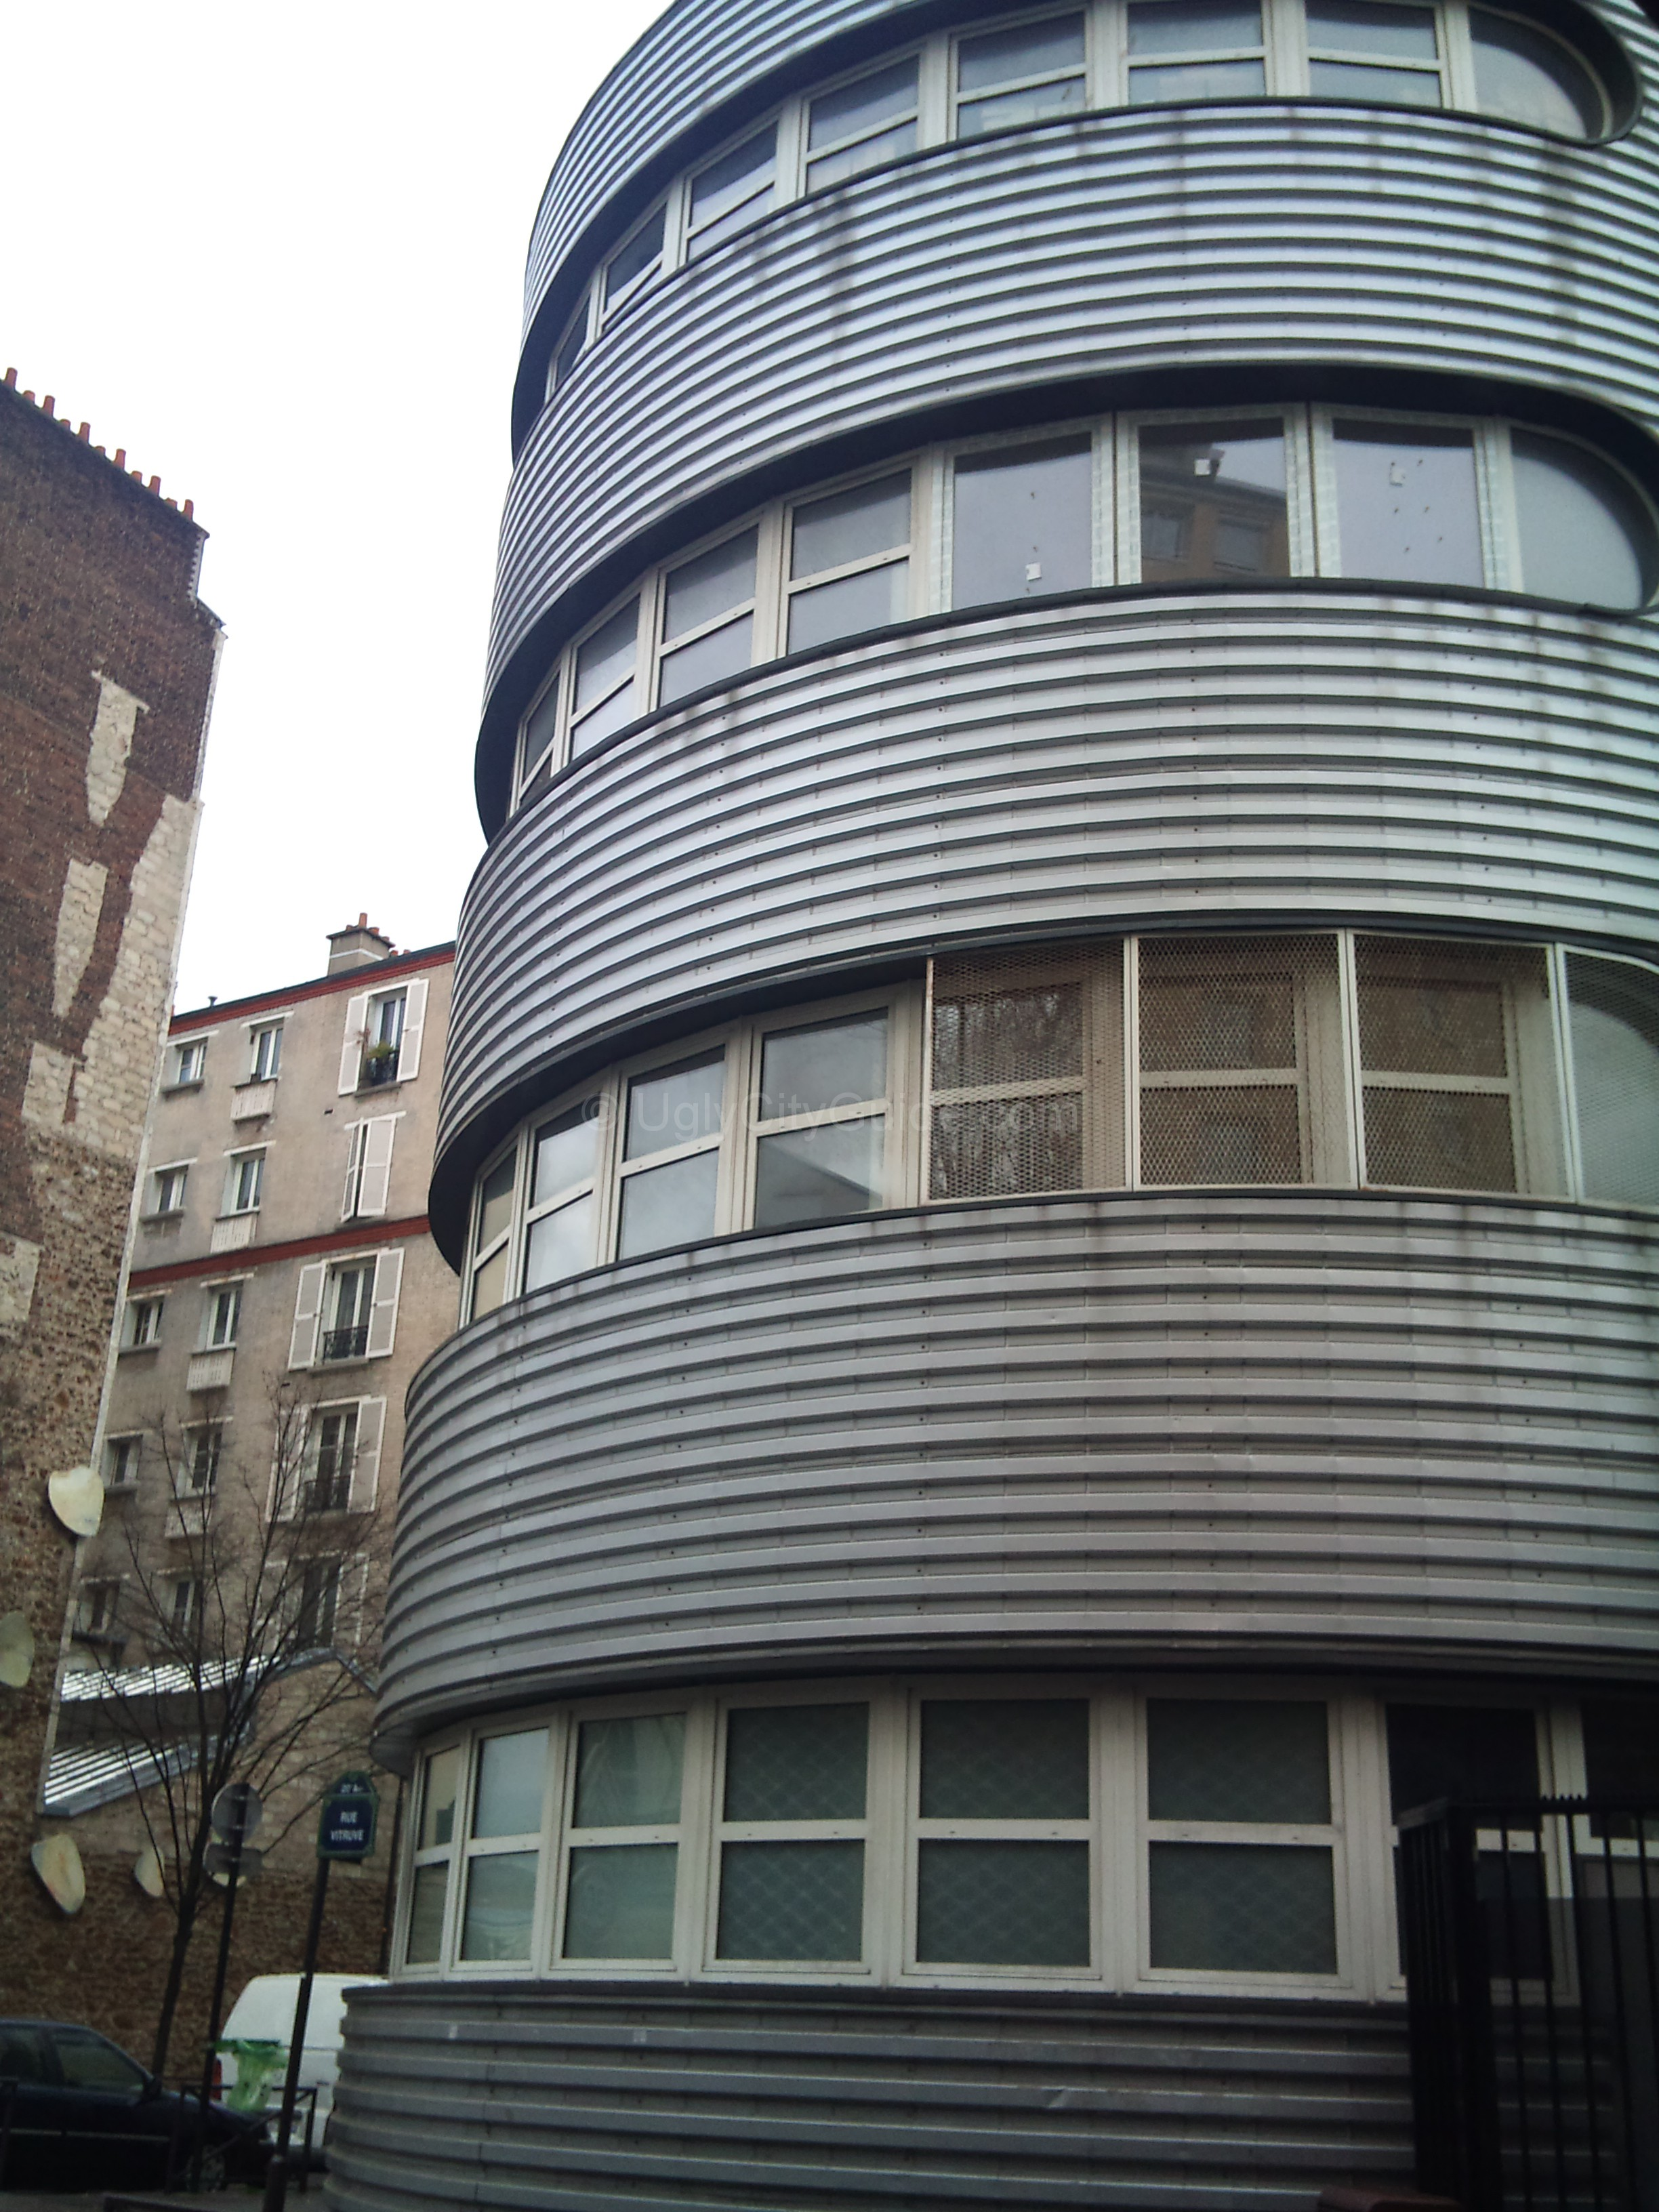 The Tin Can House at the 20th